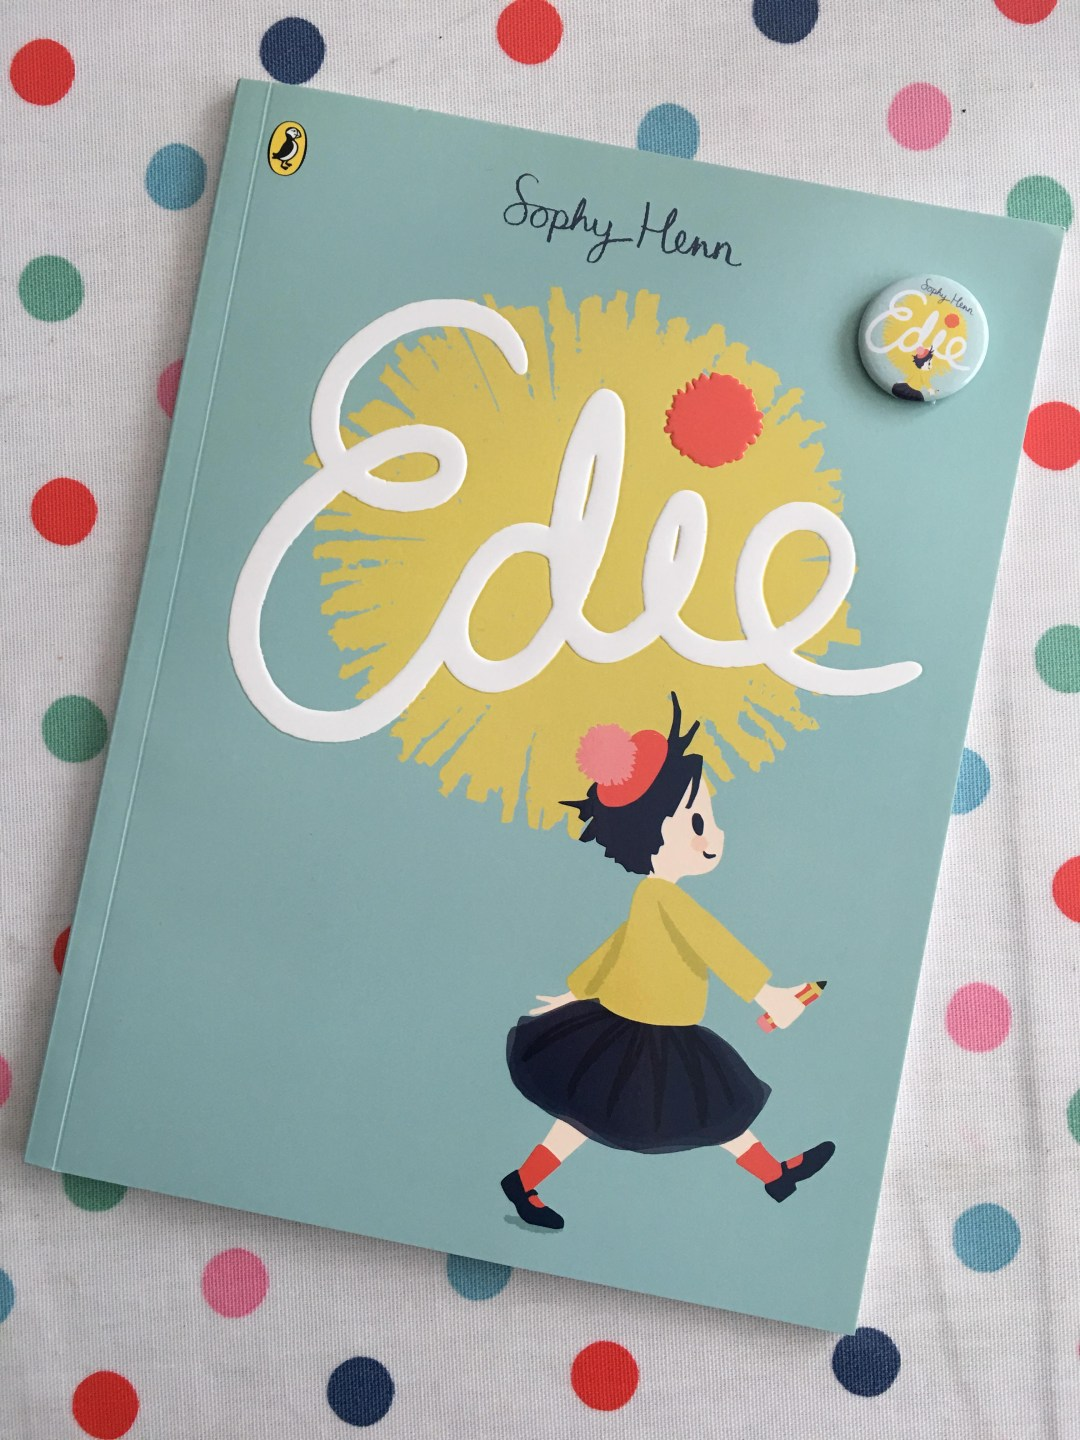 Win a copy of the new picture book from Sophy Henn